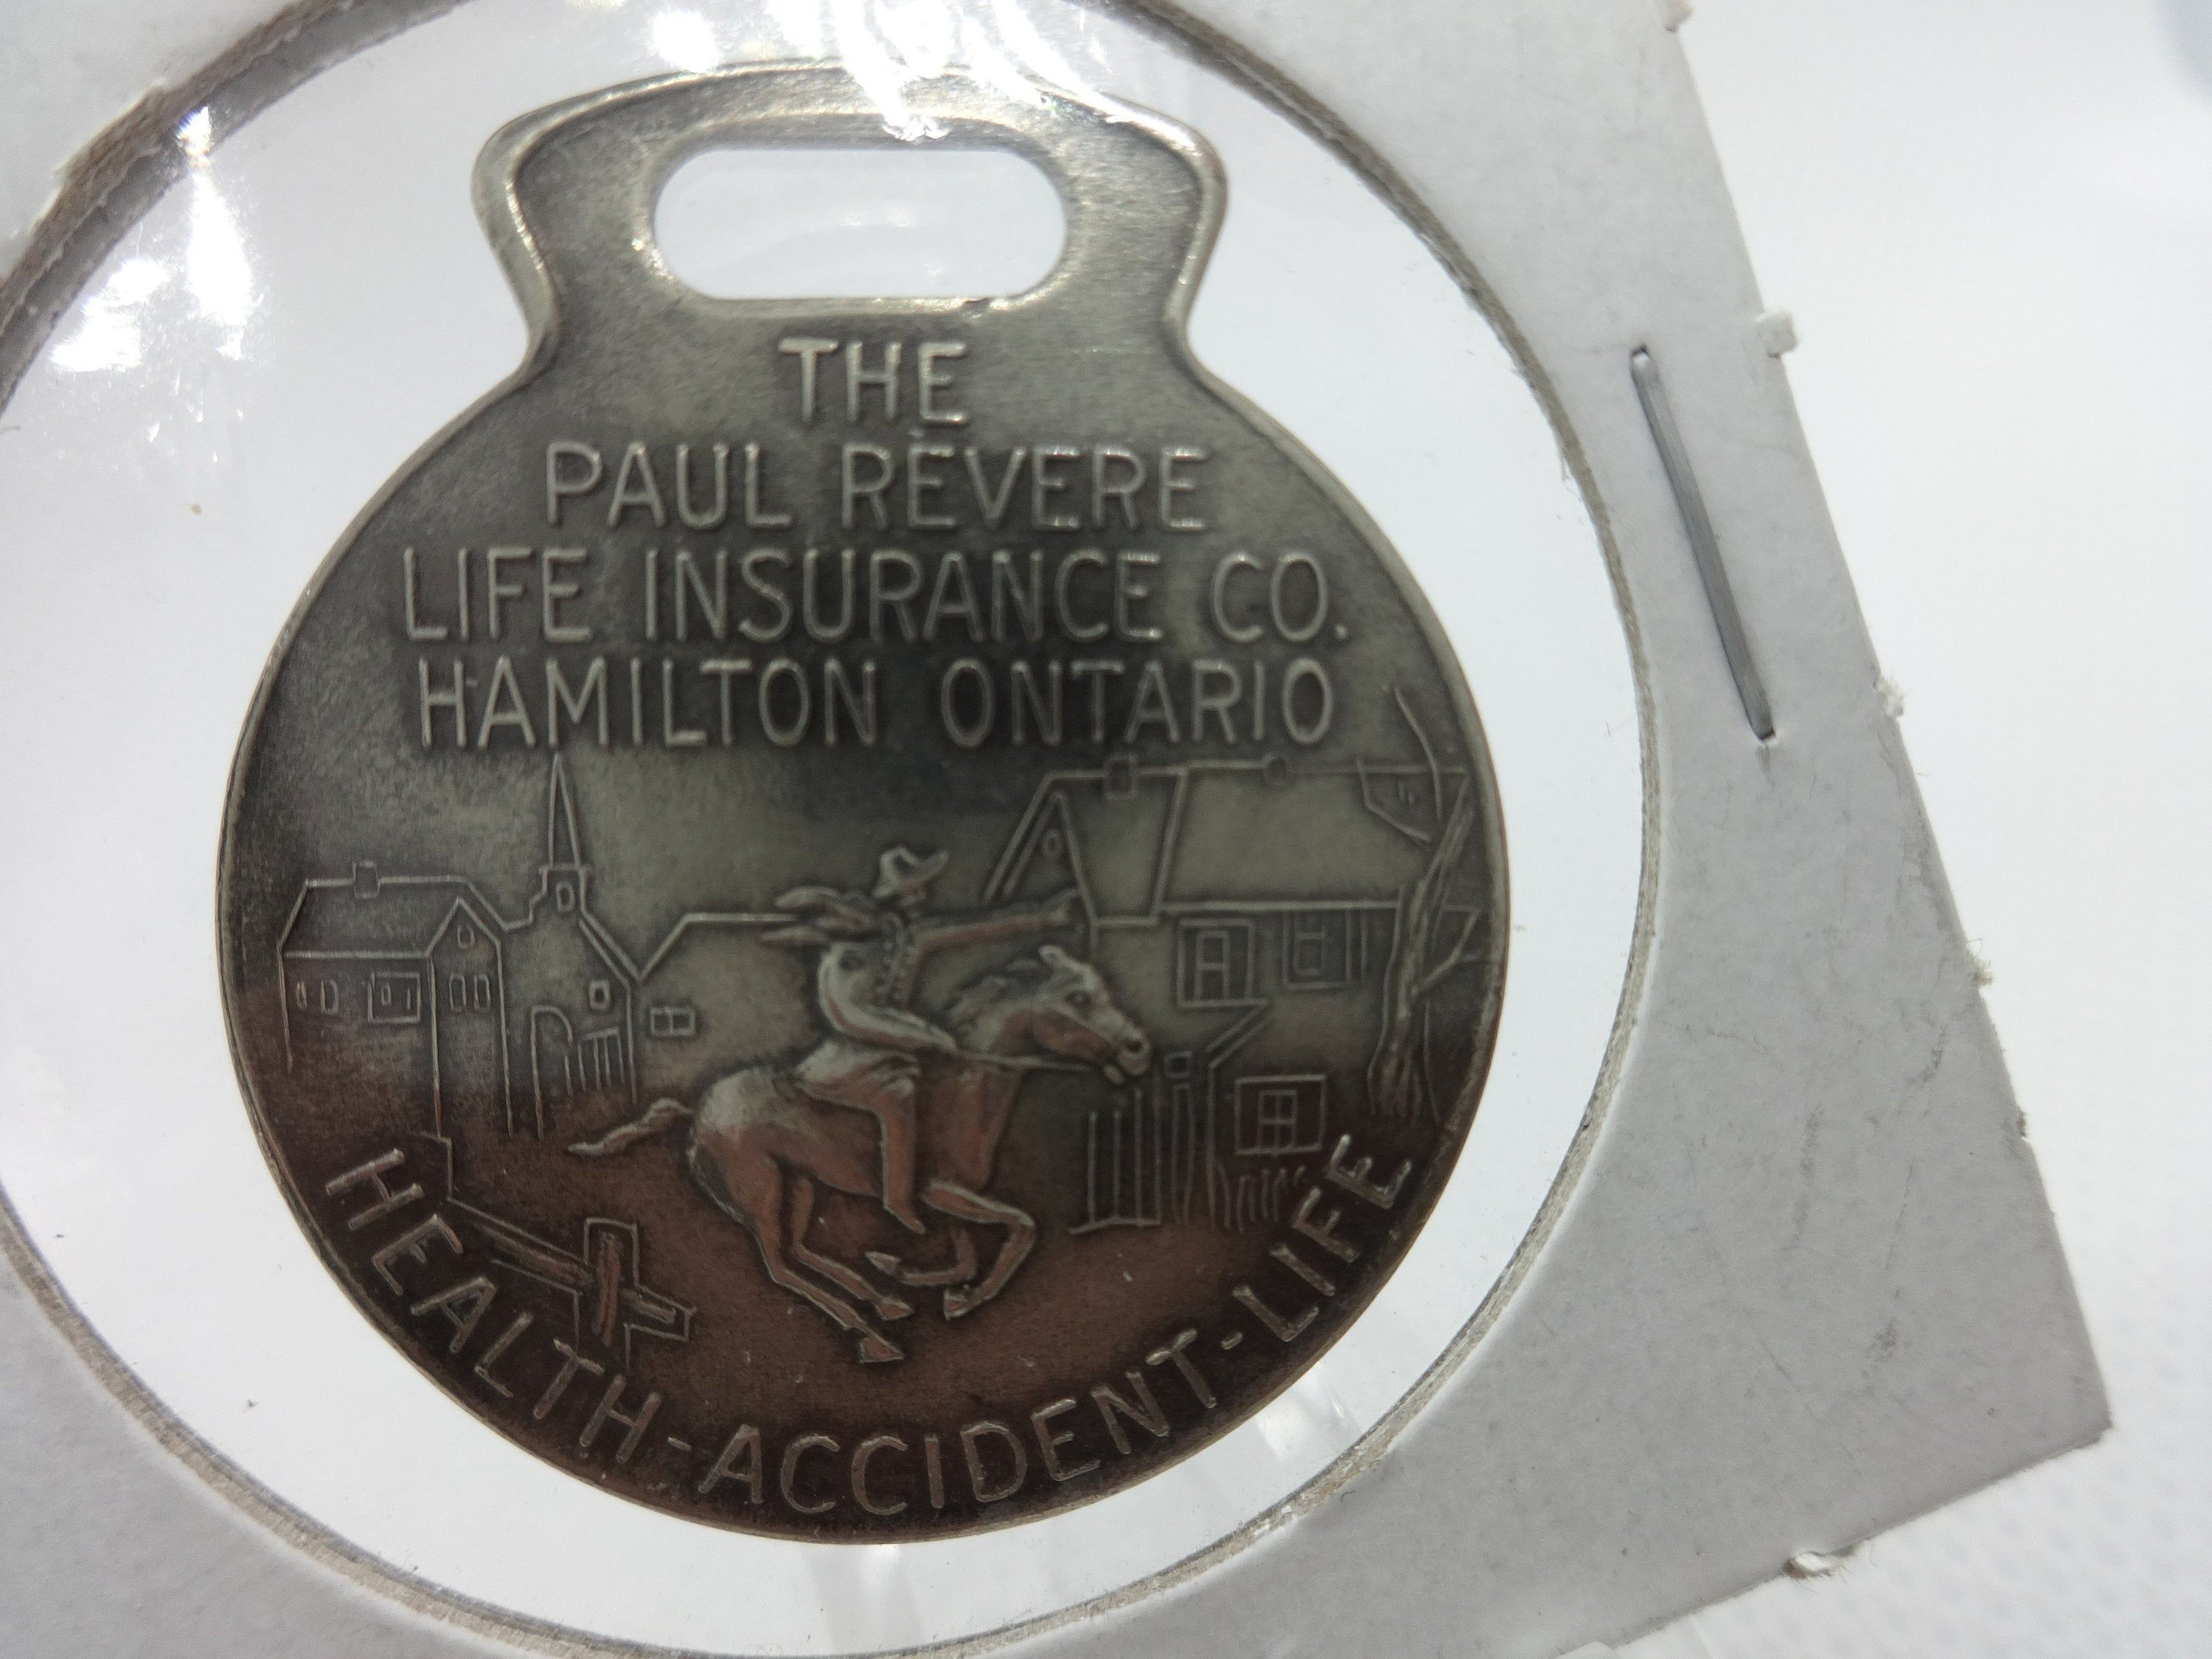 Paul Revere Life Insurance Company Watch Fob Insurance Card In